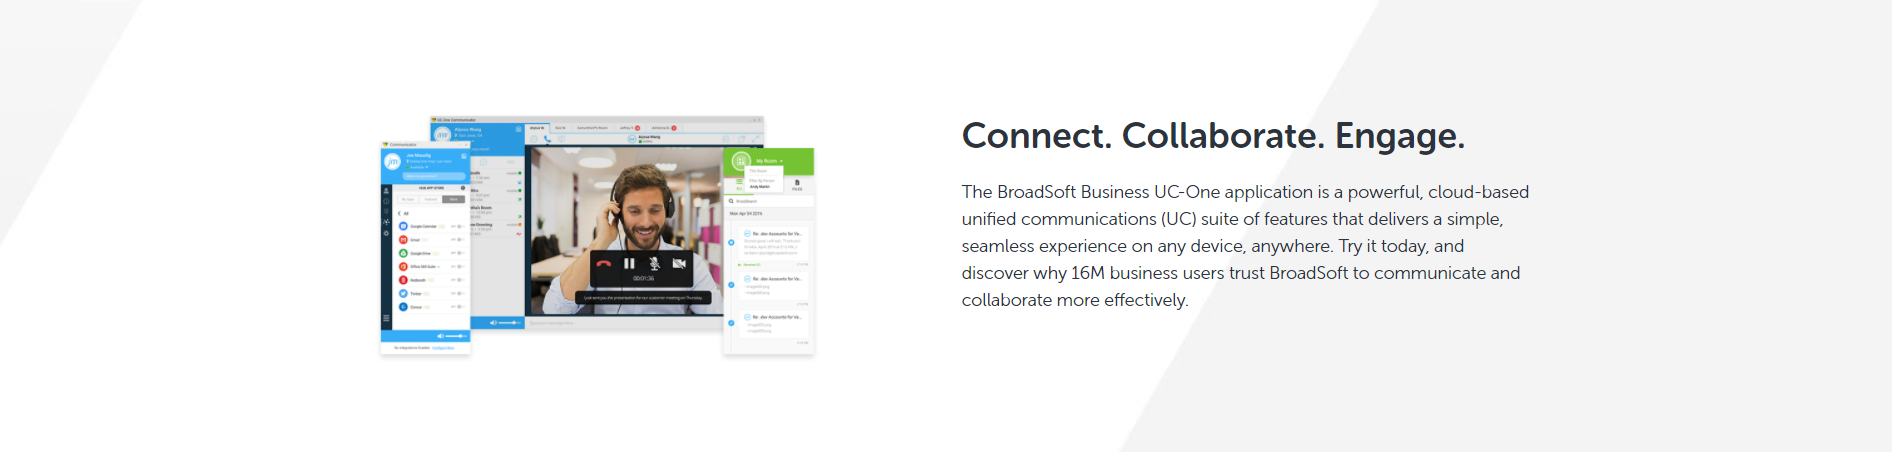 broadsoft-free-trial-connect.png